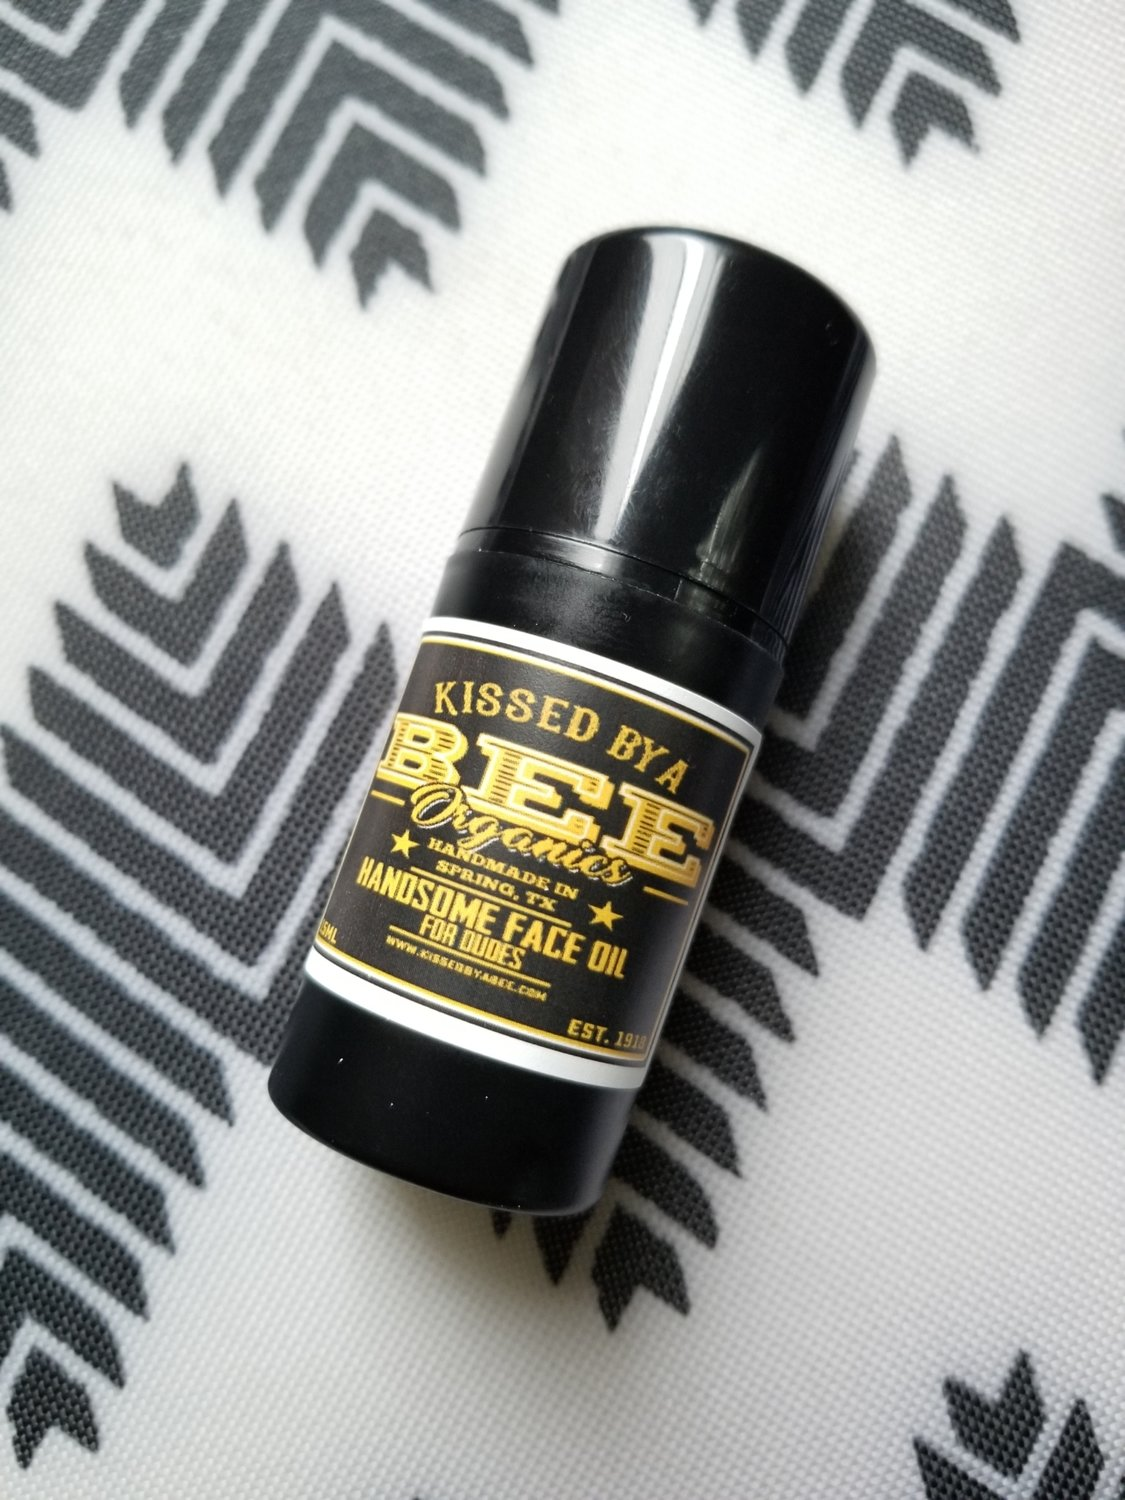 Handsome Face Oil for Dudes (.15ml)